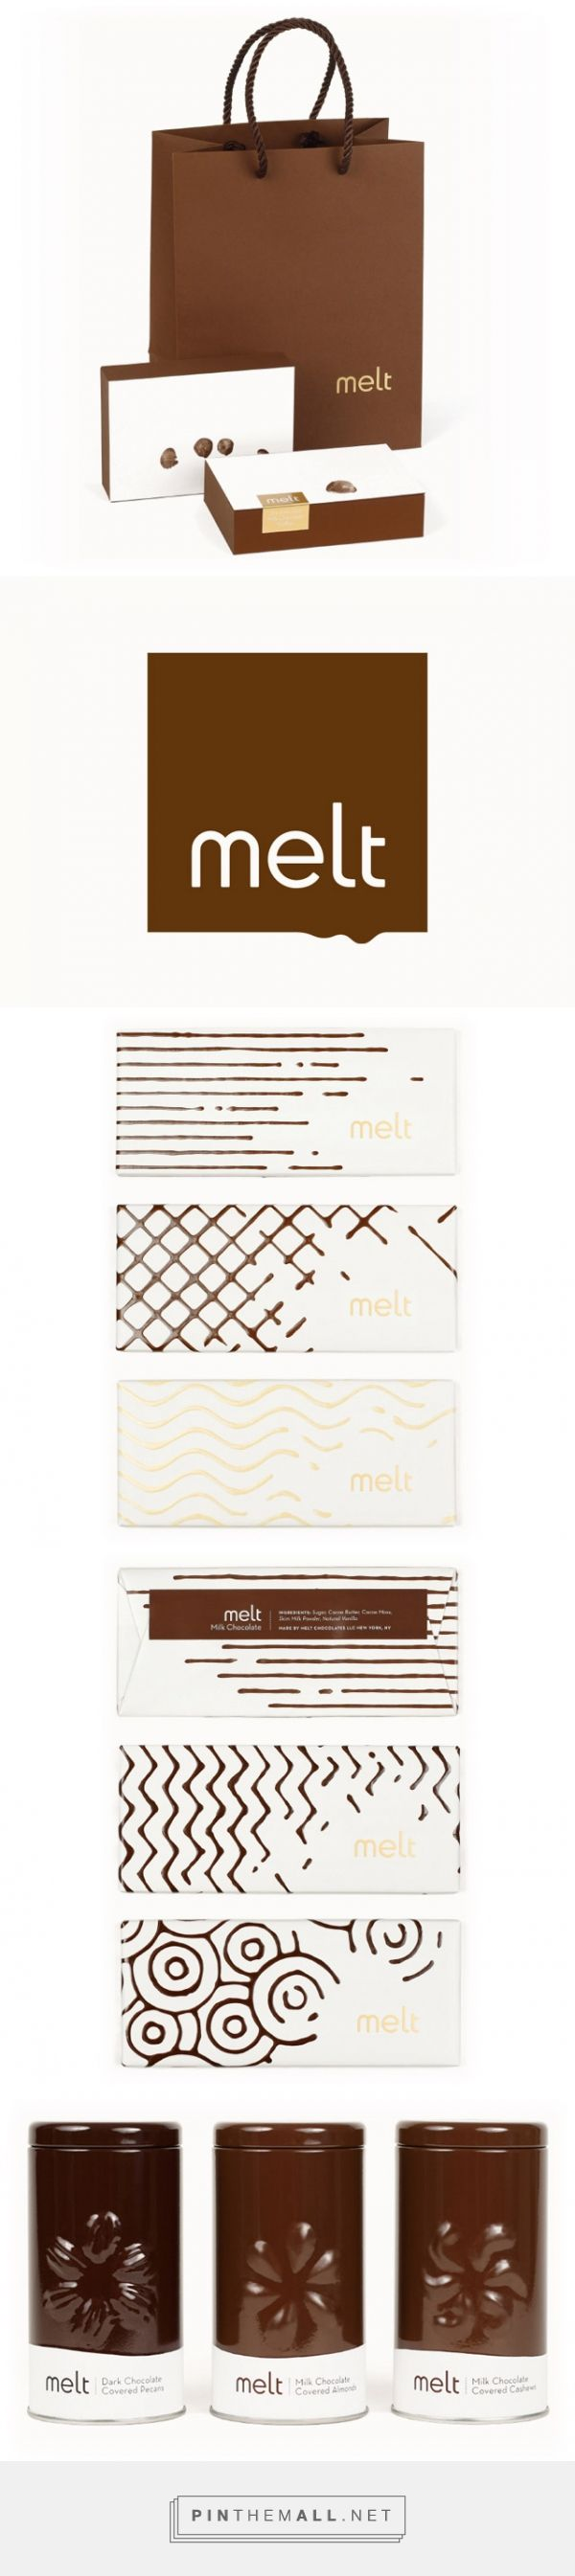 MELT: Mouthwatering Design for a Gourmet Chocolate Shop by Jesse Kirsch (JJAAKK) curated by Packaging Diva PD. Packaging and logo design with classic characteristics of melted chocolate are used throughout, providing a tantalizing glimpse at the wonderfulness contained within.